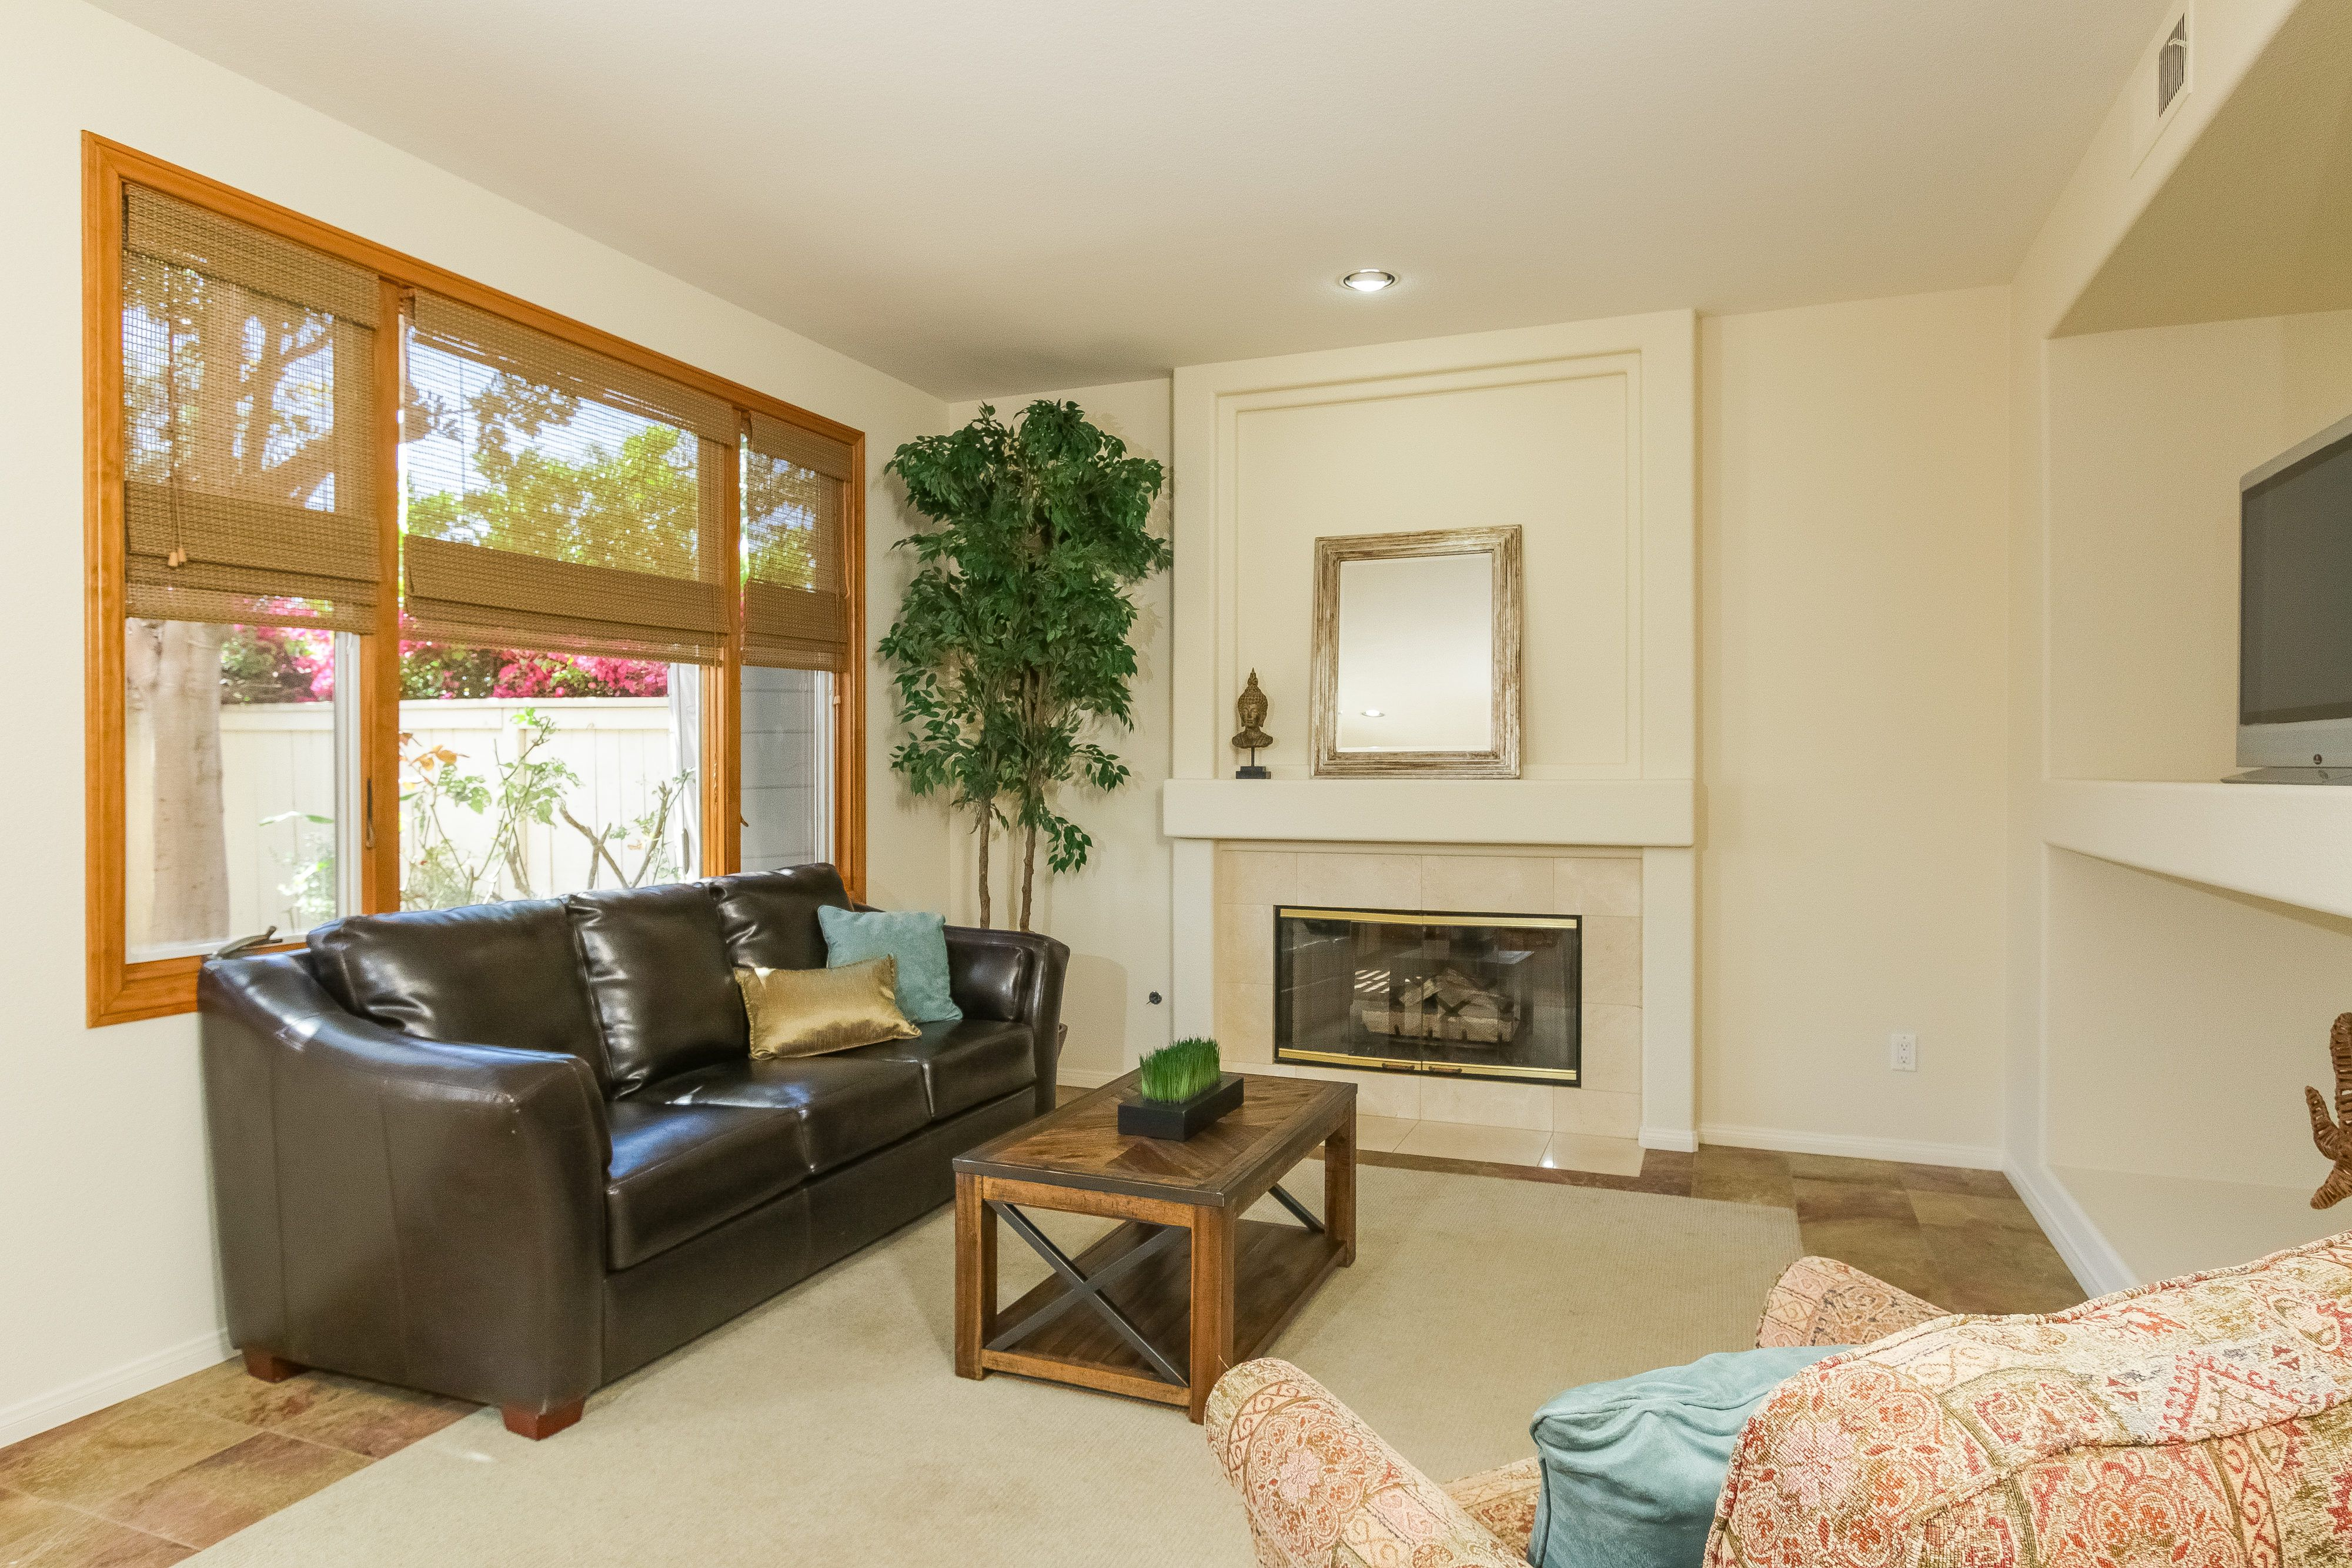 Cozy Family Room In This Renaissance Community Home At The Utc Adorable The Living Room San Diego 2018